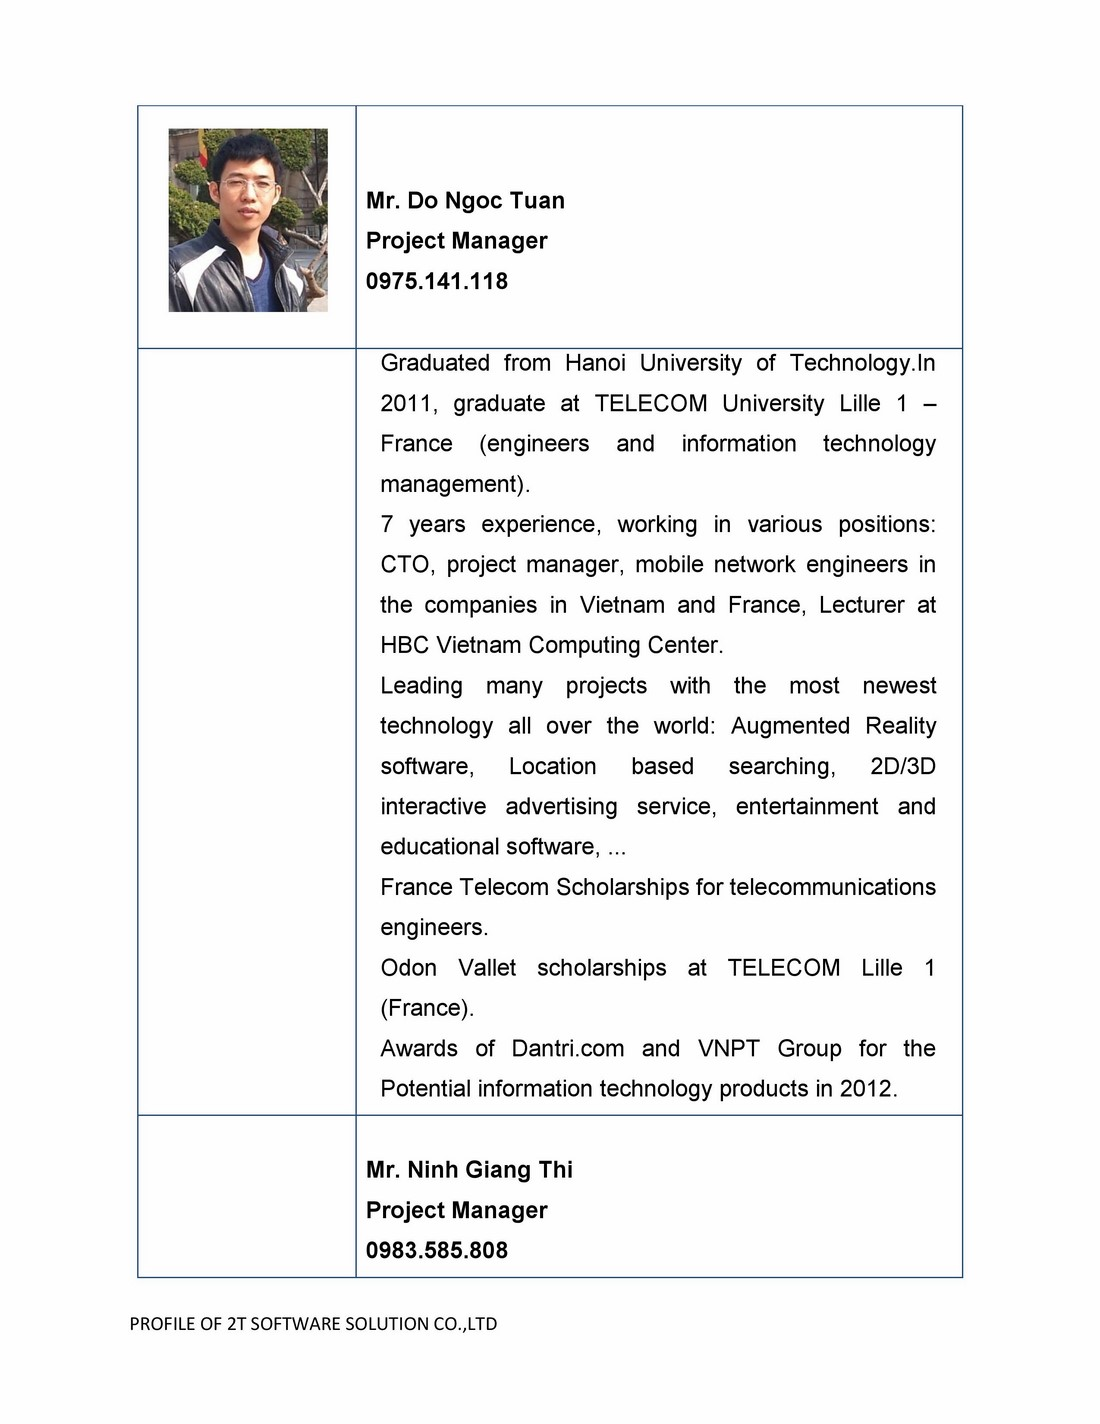 2TS Profile_eng-page-006 (Copy)